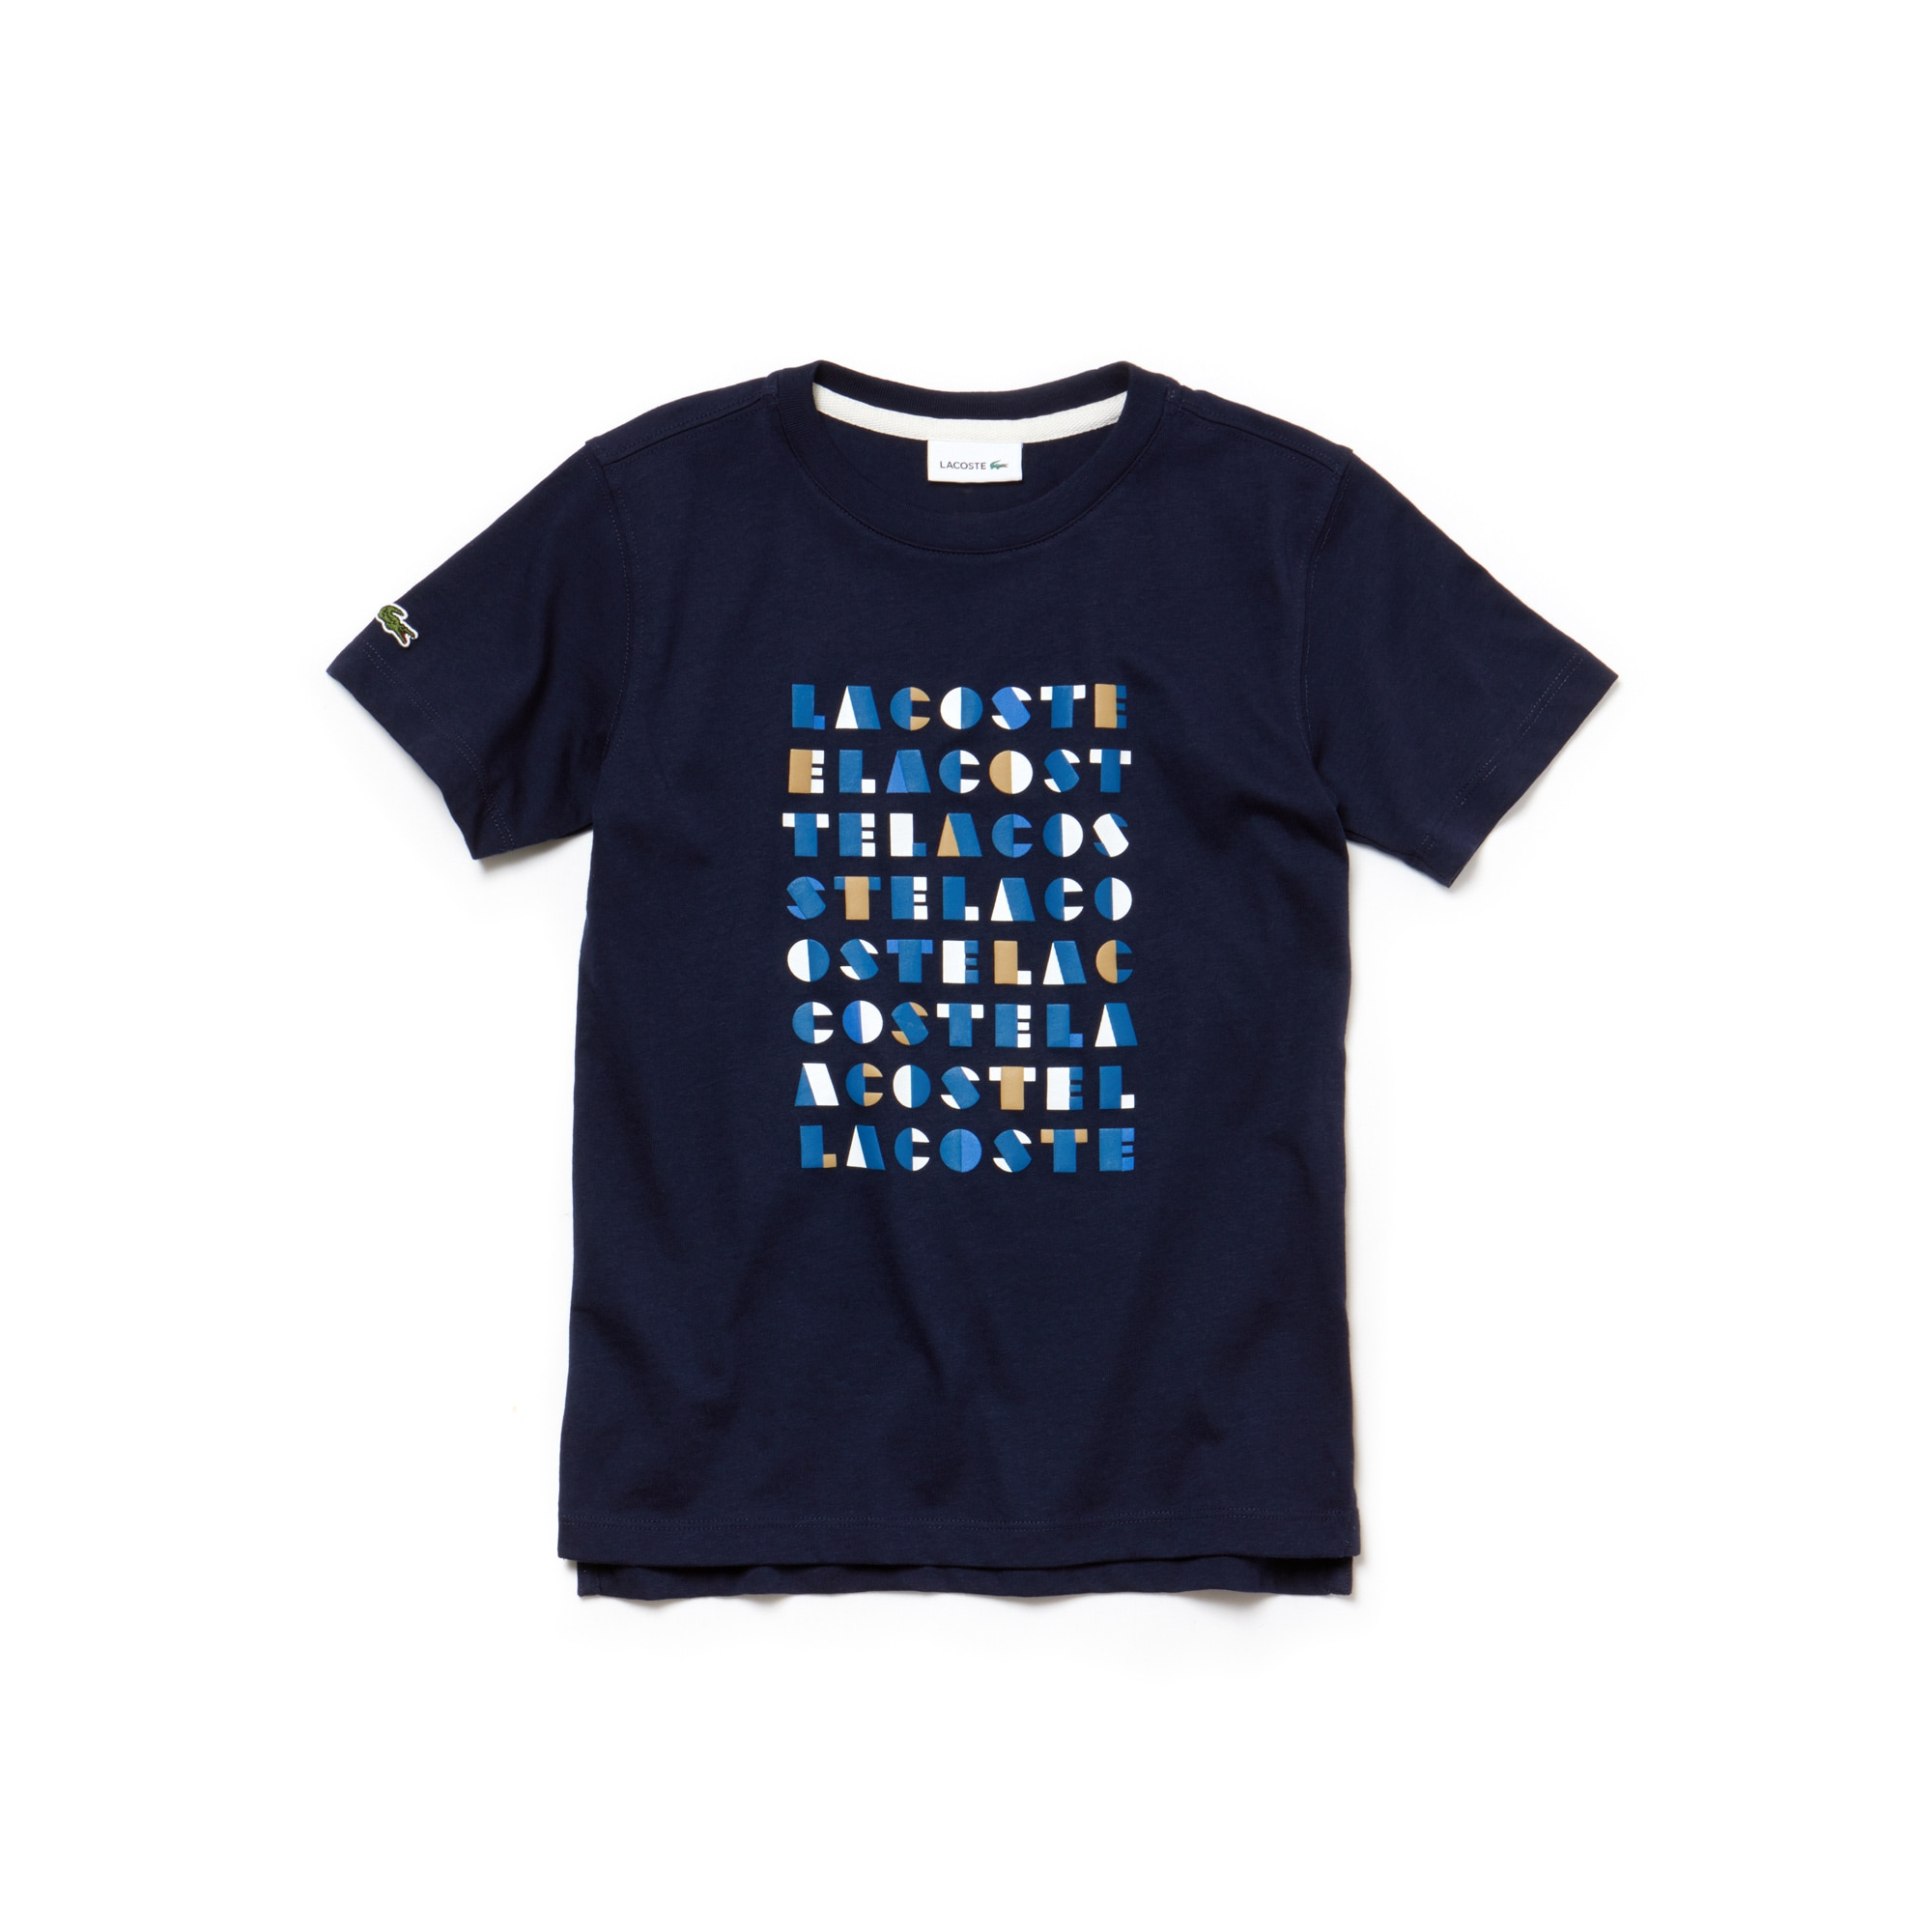 Boys' Crew Neck Graphic Lettering Cotton Jersey T-shirt